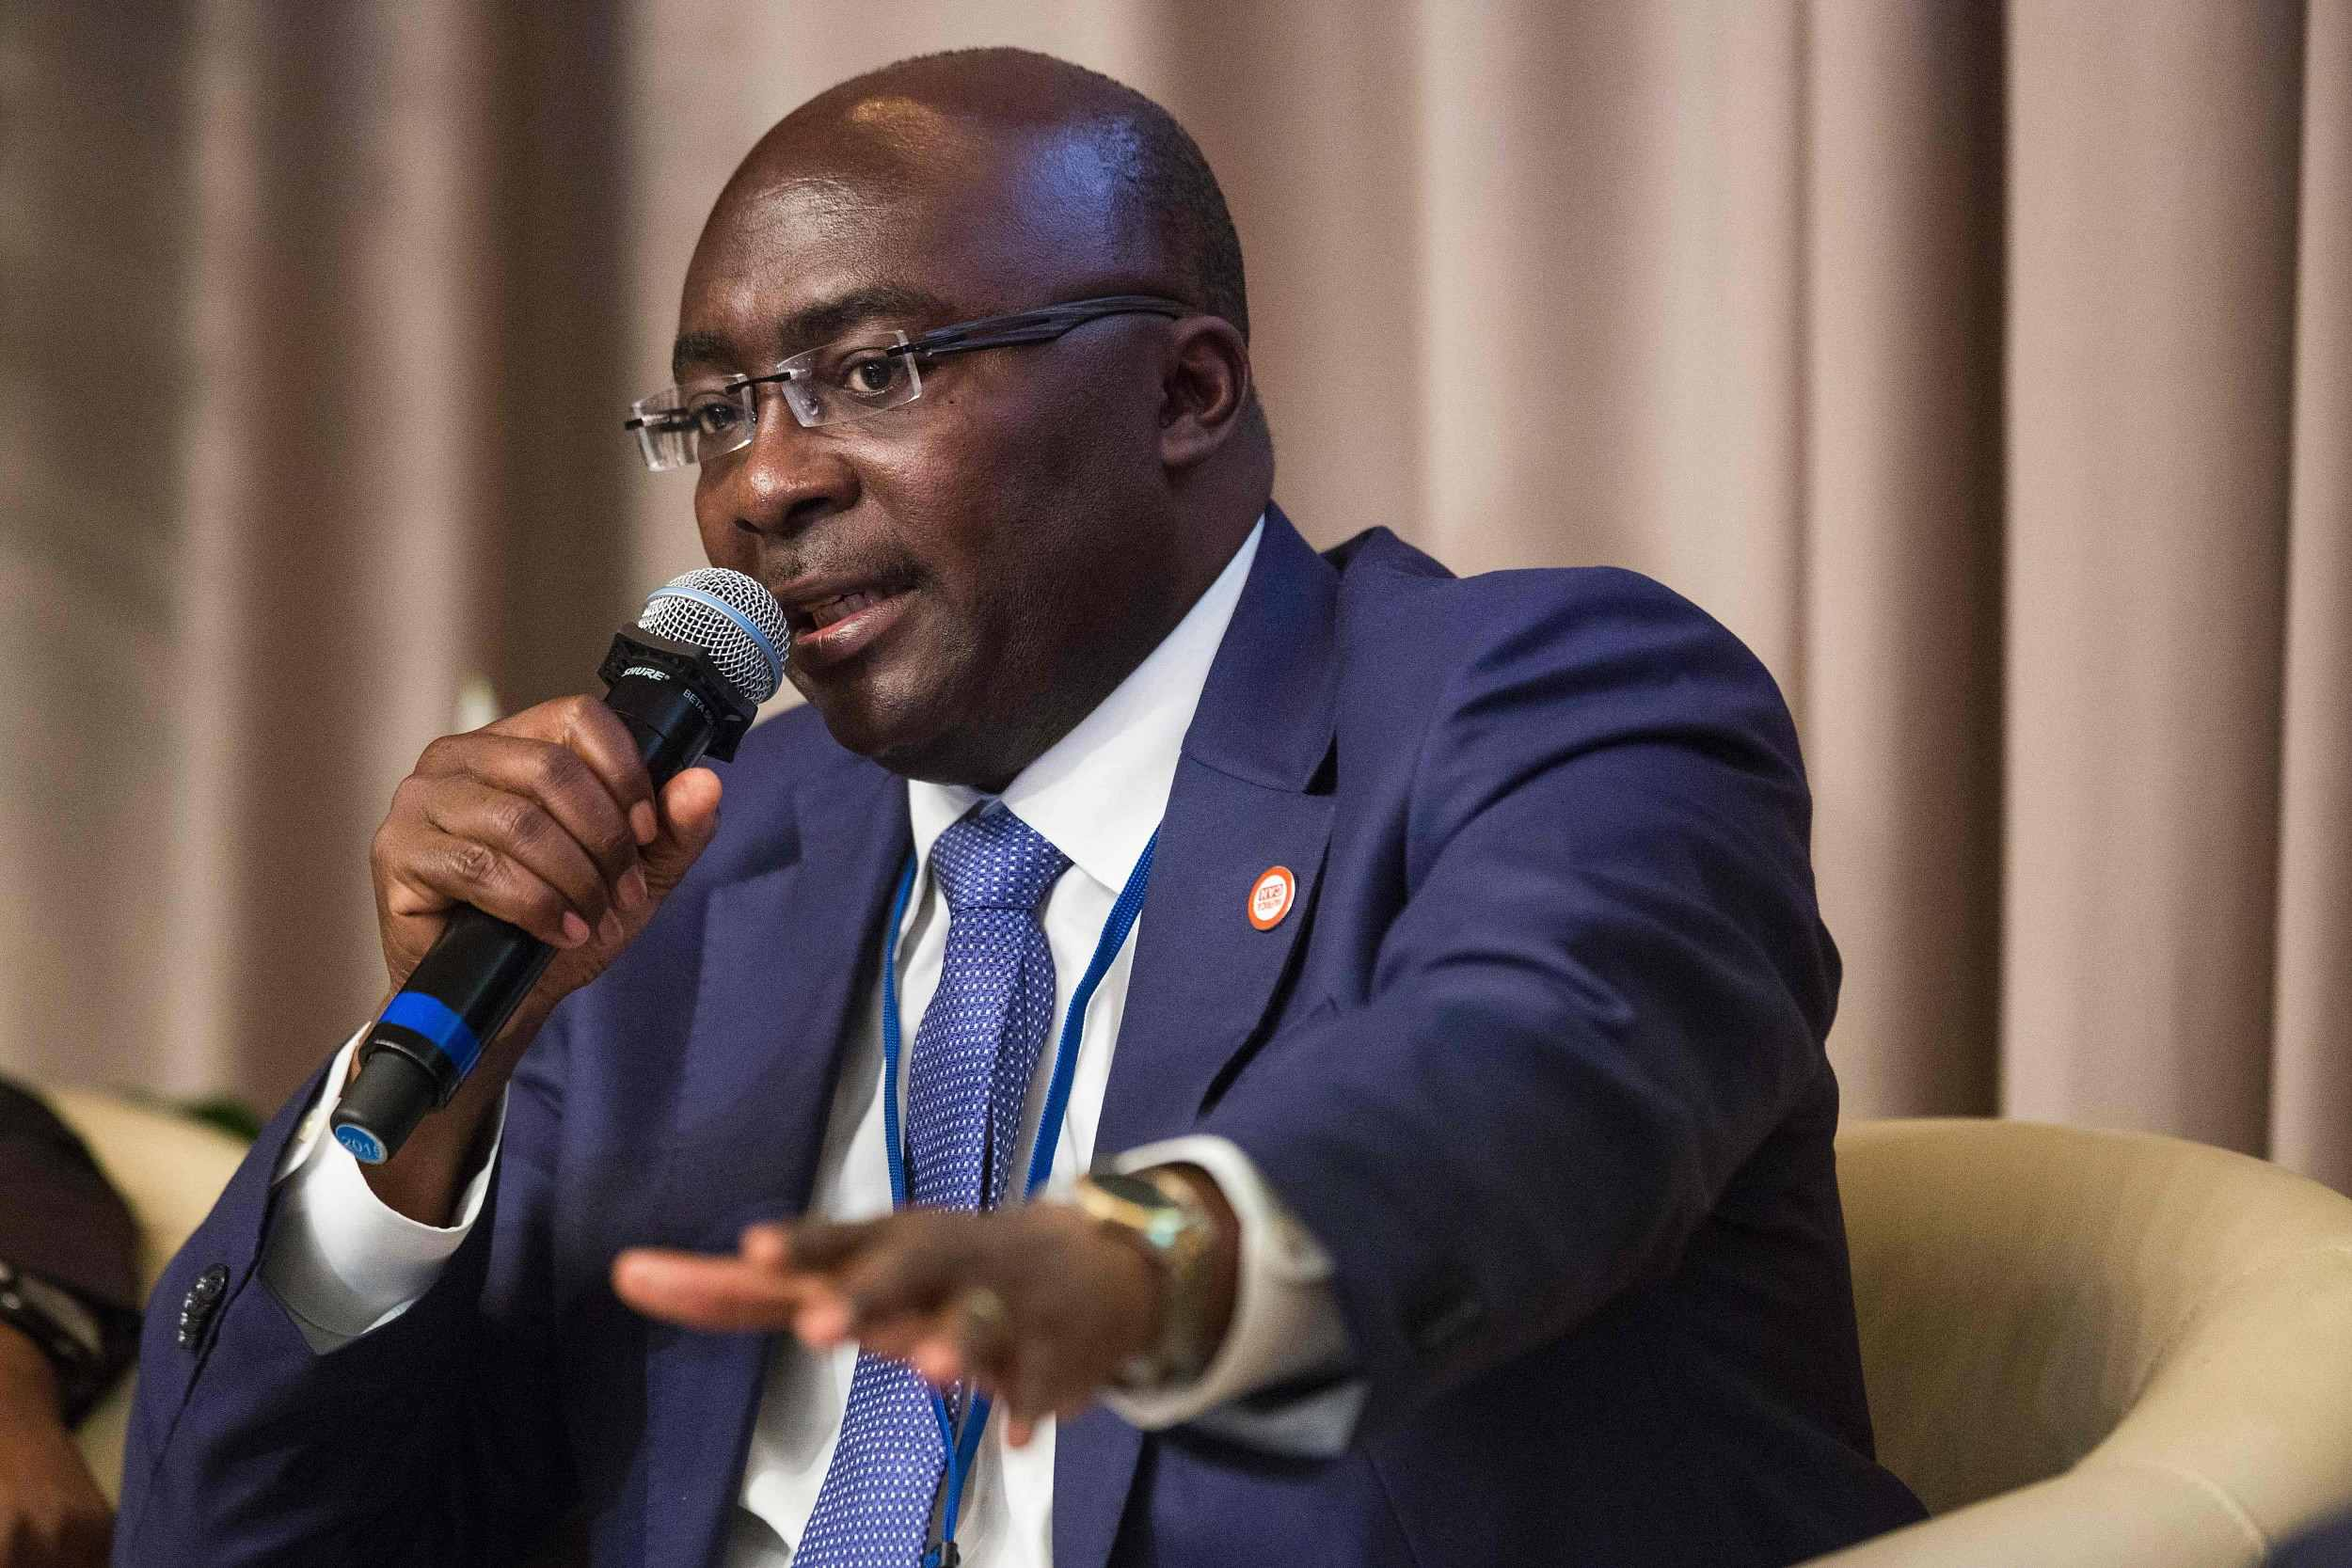 Interview with Ghanaian Vice President Bawumia on bilateral relations